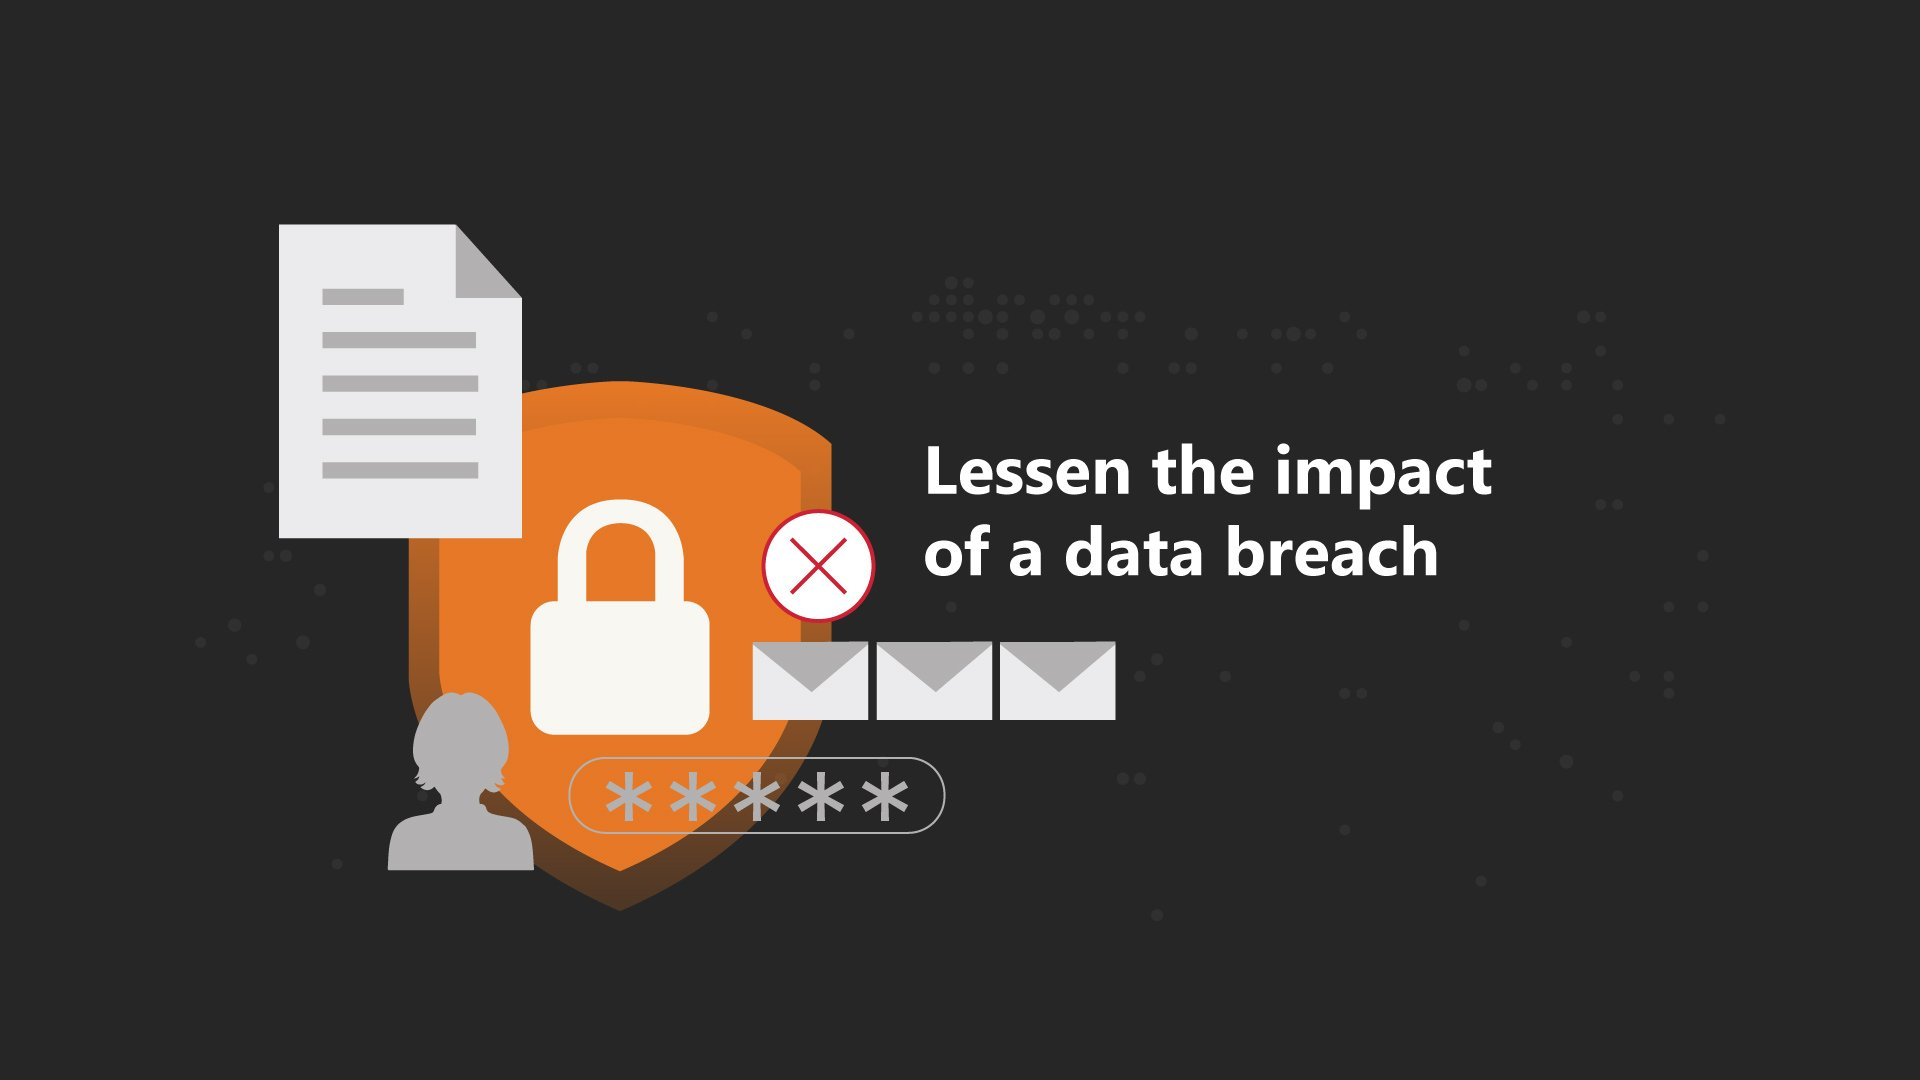 iManage and DocsCorp have partnered to help reduce the risk of email data breaches